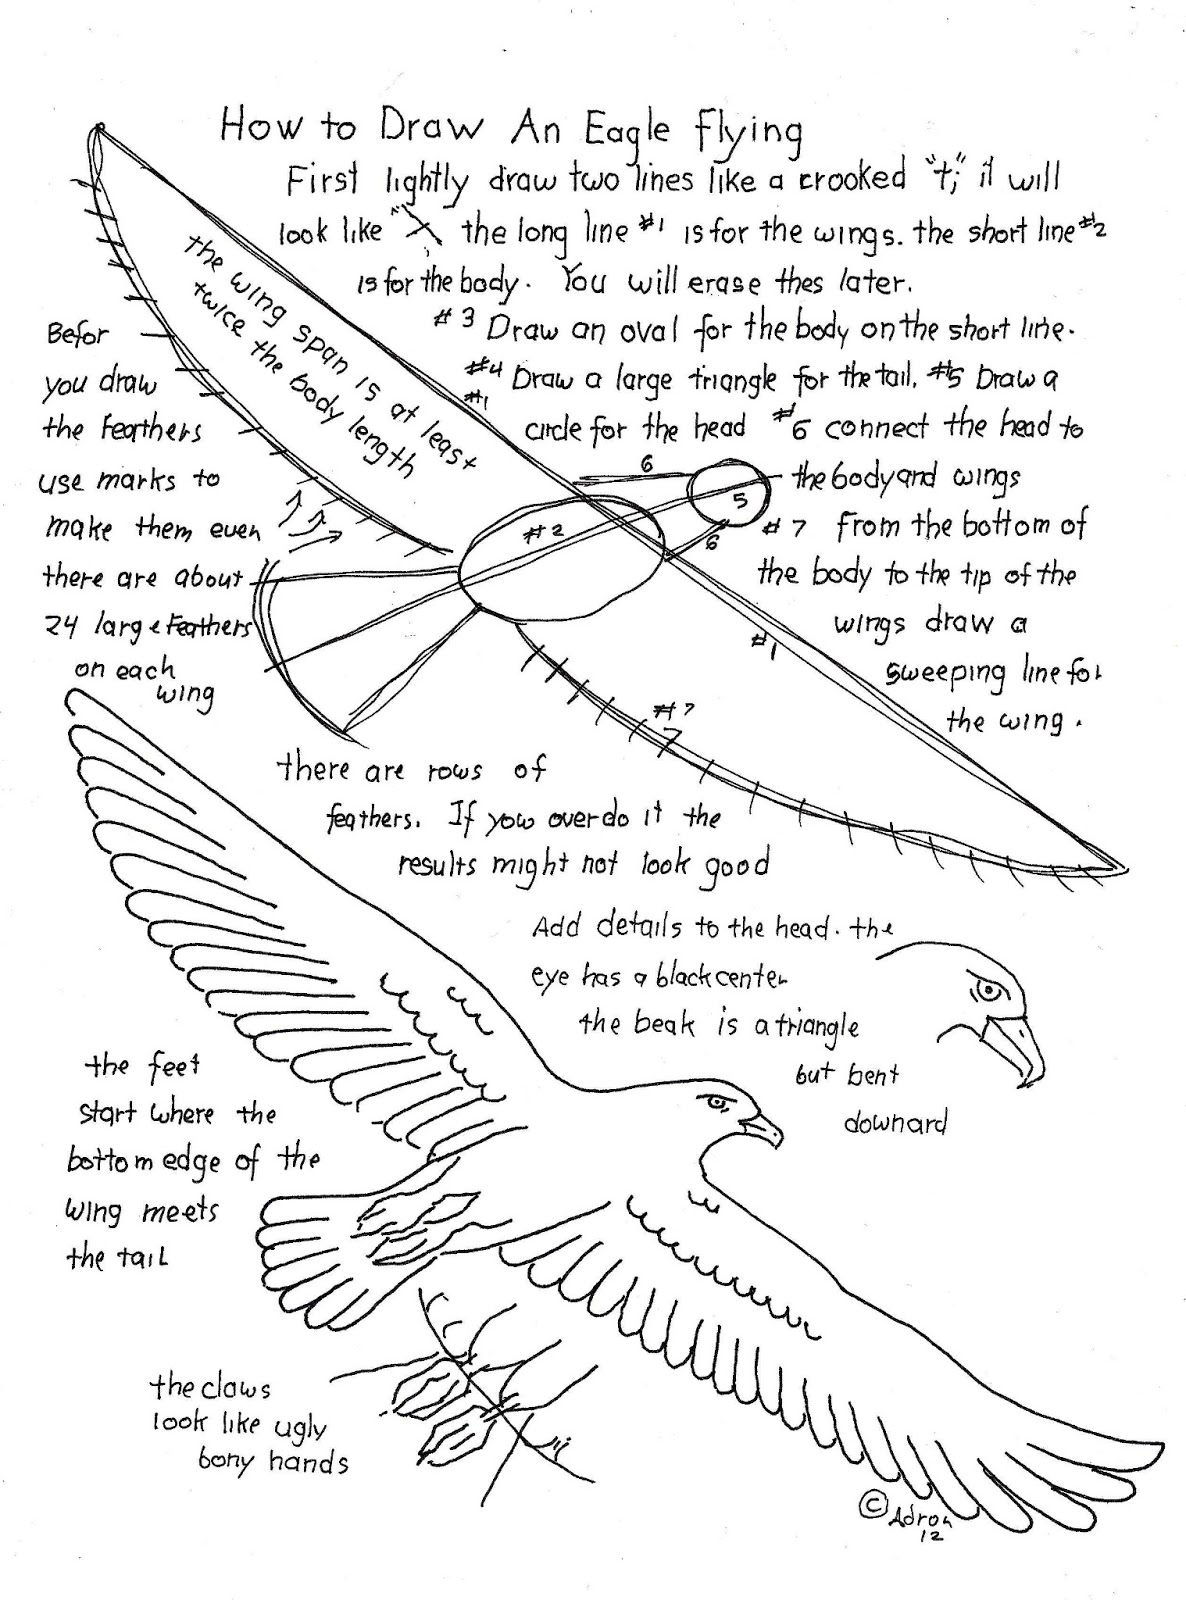 how to draw an eagle flying learn how to draw an eagle flying birds step by step flying eagle to how an draw